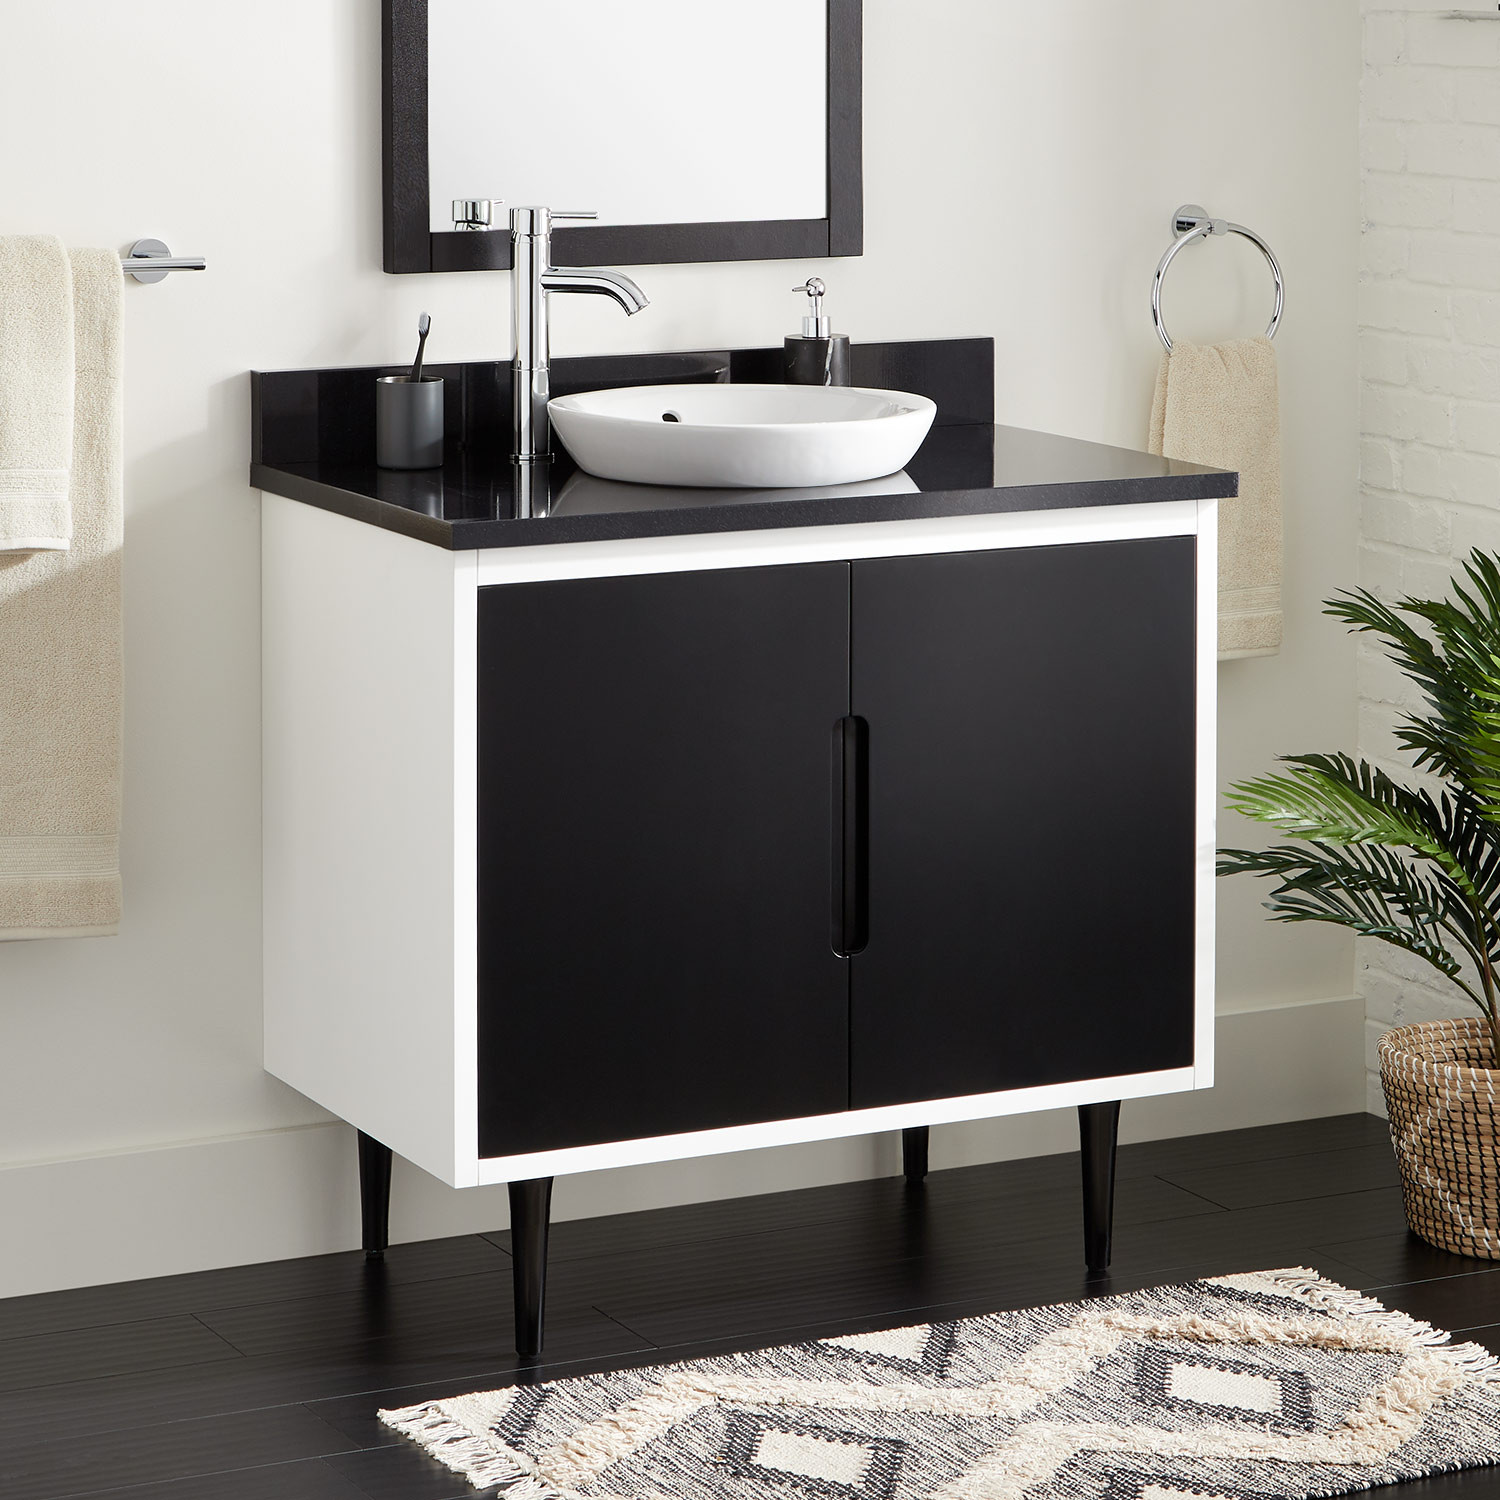 Benefits Of Hanging Vanity On The Wall